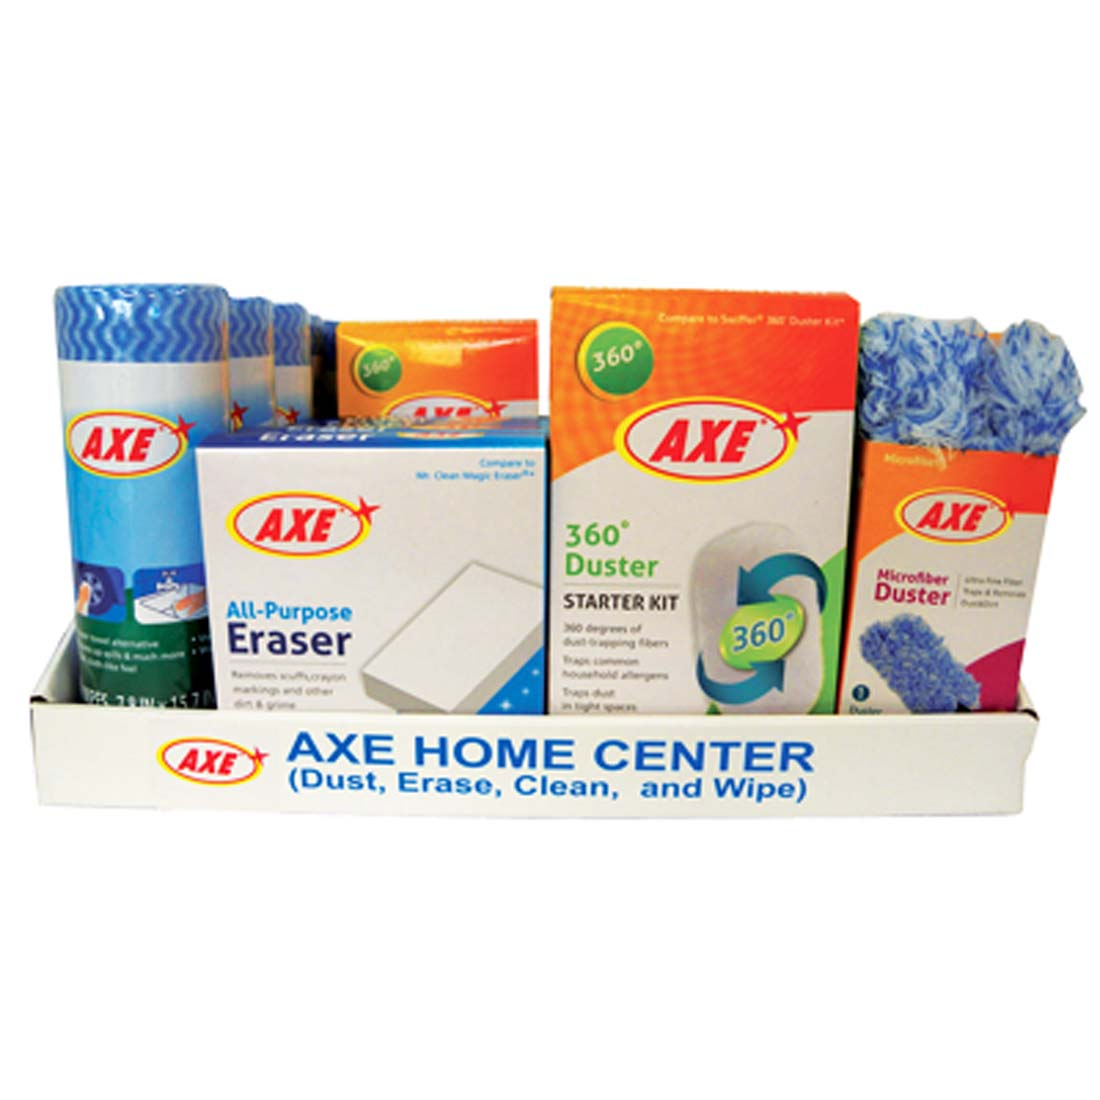 View AXE HOME CENTER CLEANING KIT 24 PIECE IN DISPLAY (MICROFIBER DUSTER 360 DEGREE DUSTER ALL-PURPOSE ERASER REUSABLE WIPES)